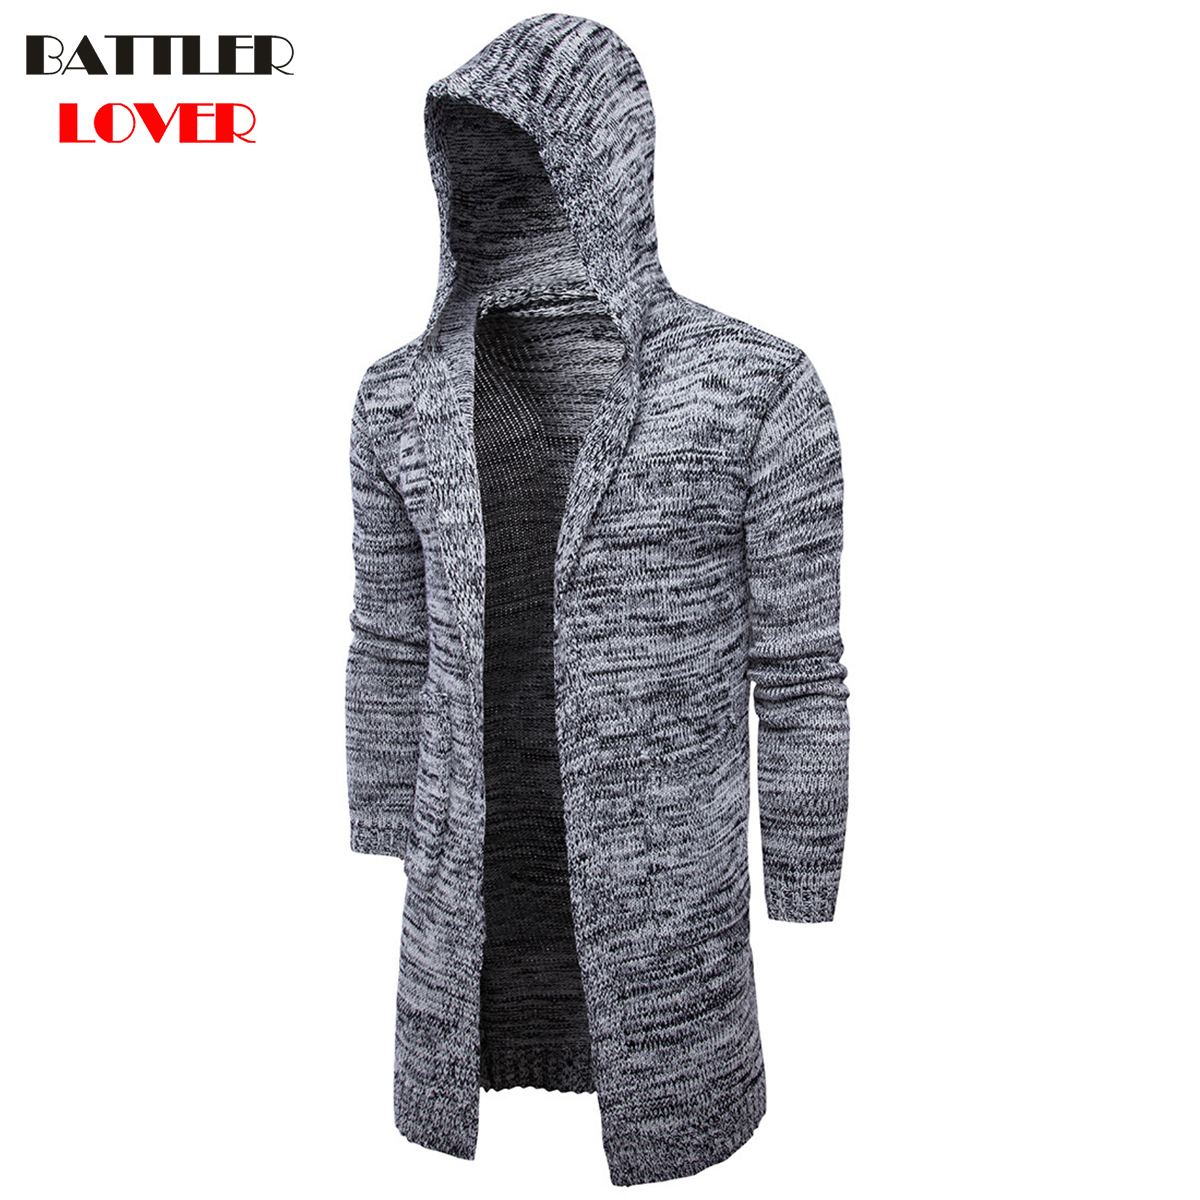 2018 Fashion Men Winter Sweater Male Hooded Cardigan Long Sleeve Sweaters Mens Casual Korean Style Hooded Cardigans Jacket Coat